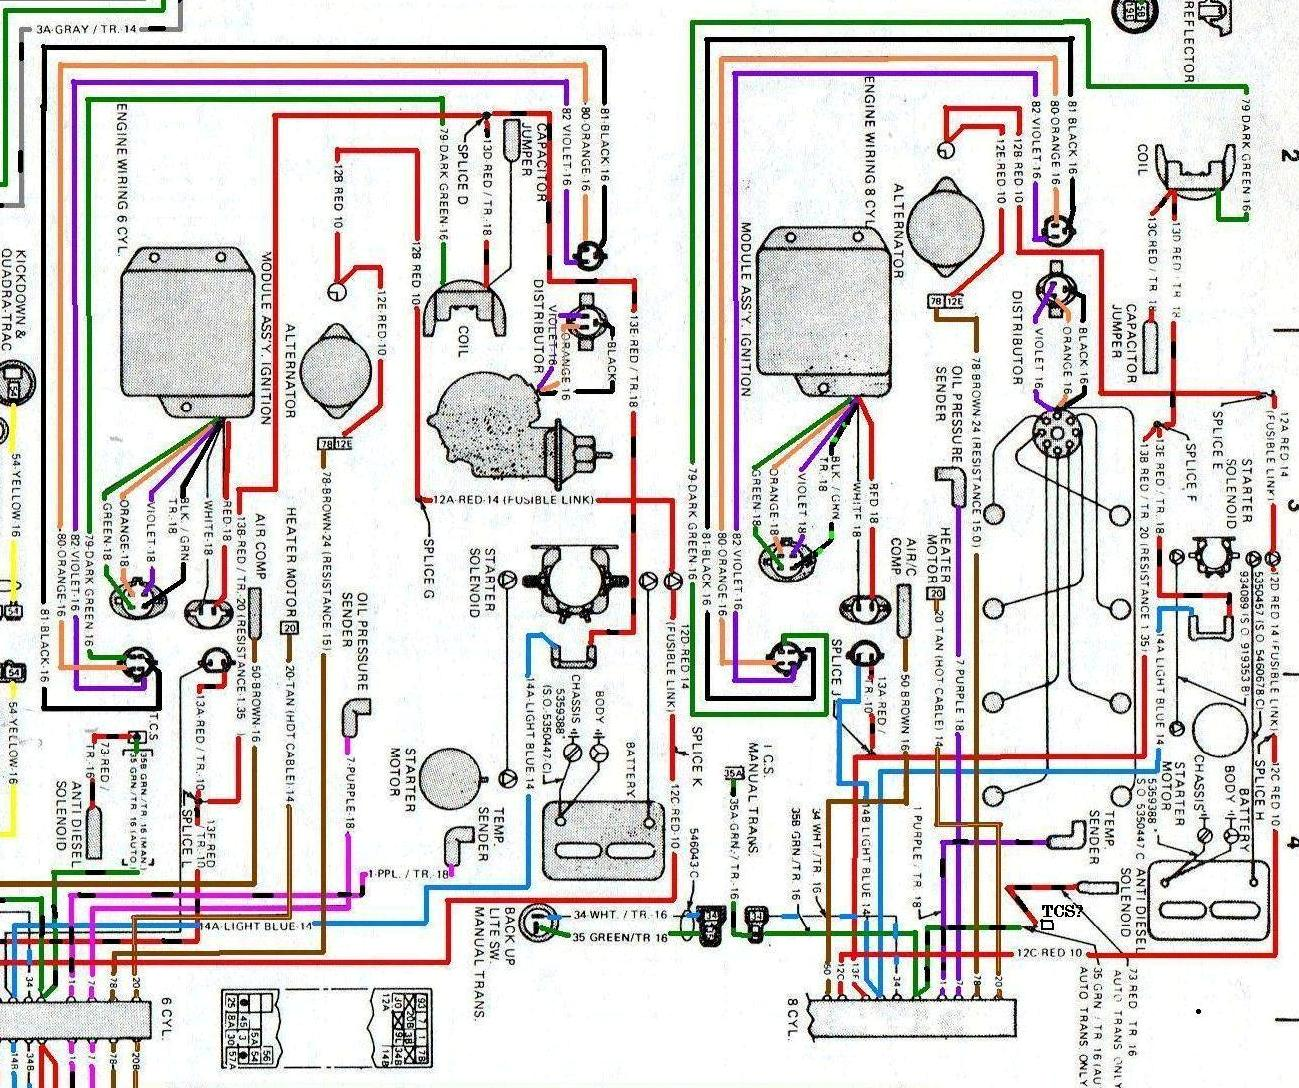 79 Jeep Cj7 Alternator Wiring Diagram Libraries Cj5 I Am Having Trouble Getting My Starter To Engage Have Taken The79